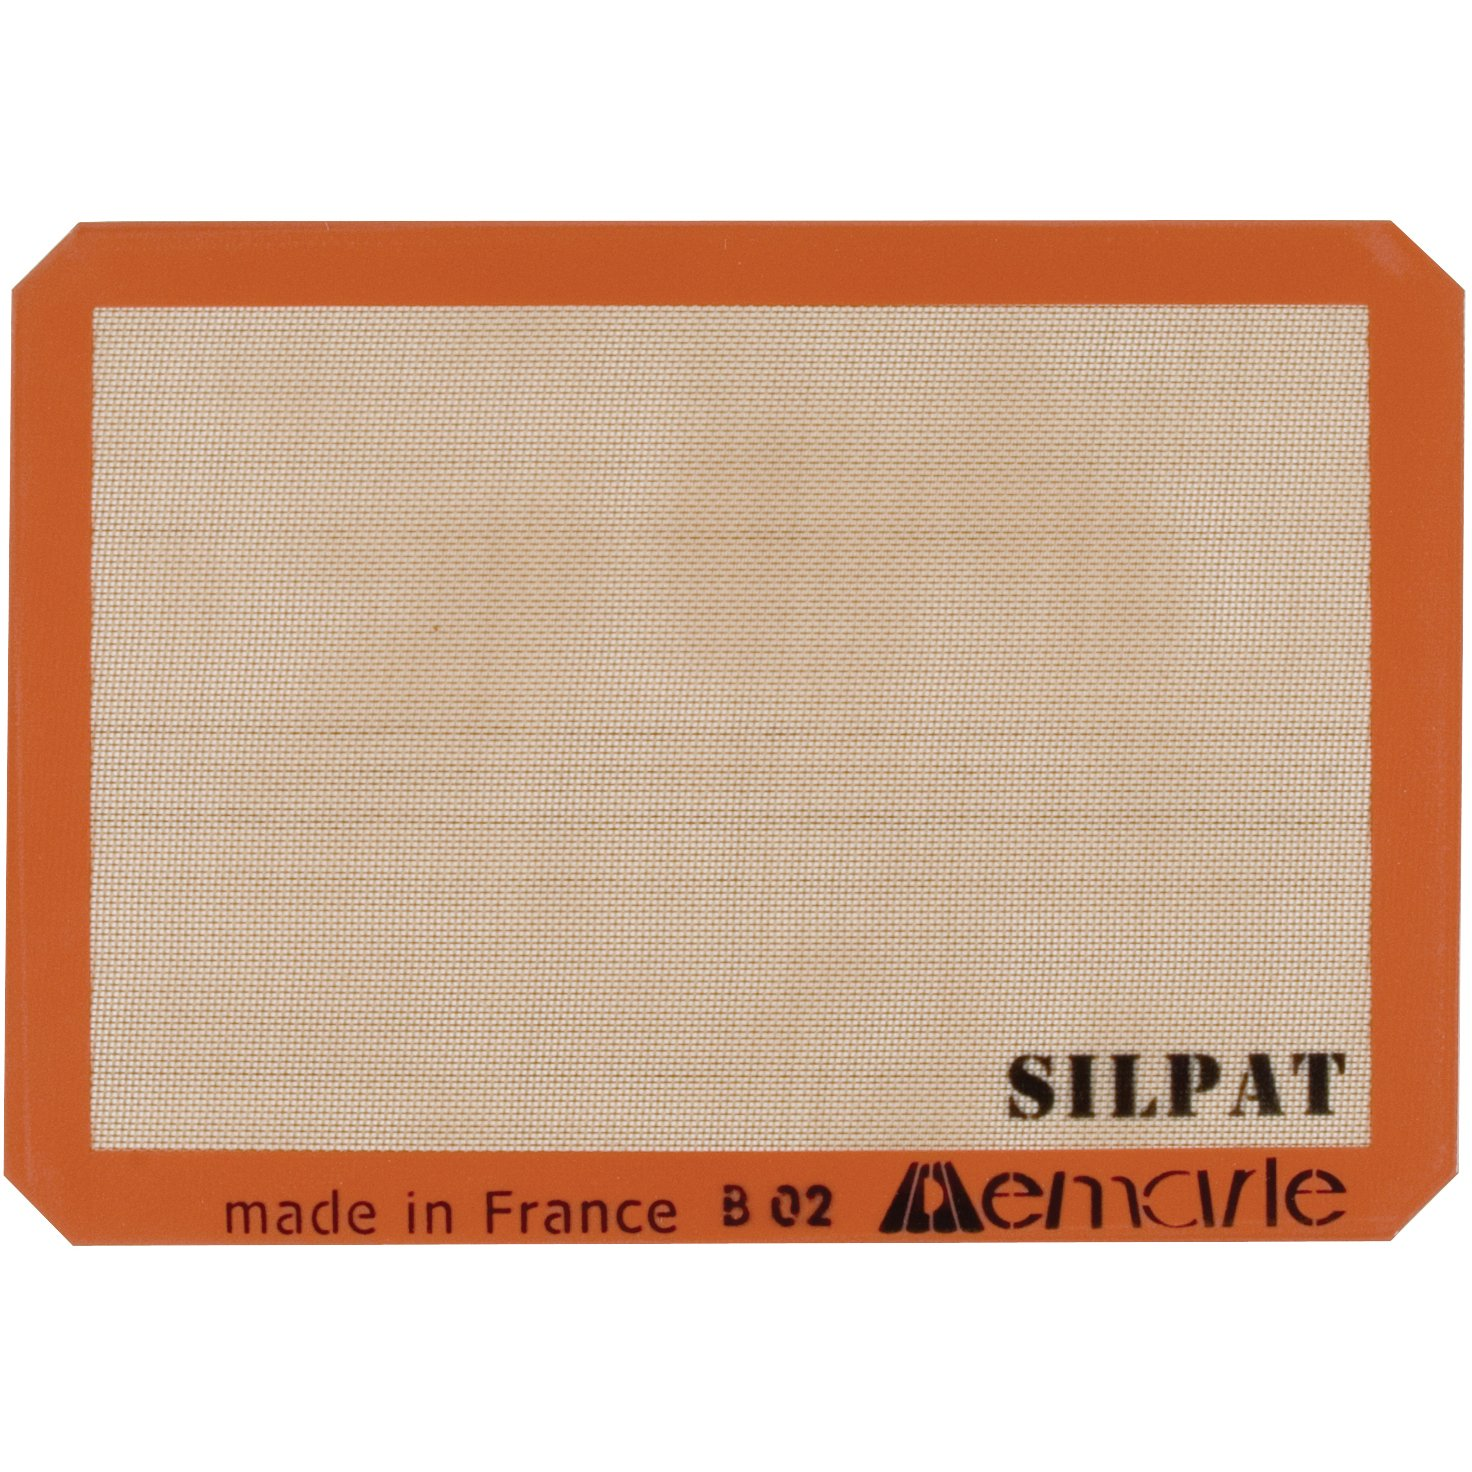 Demarle Silpat Silicone Cookie Baking Mat